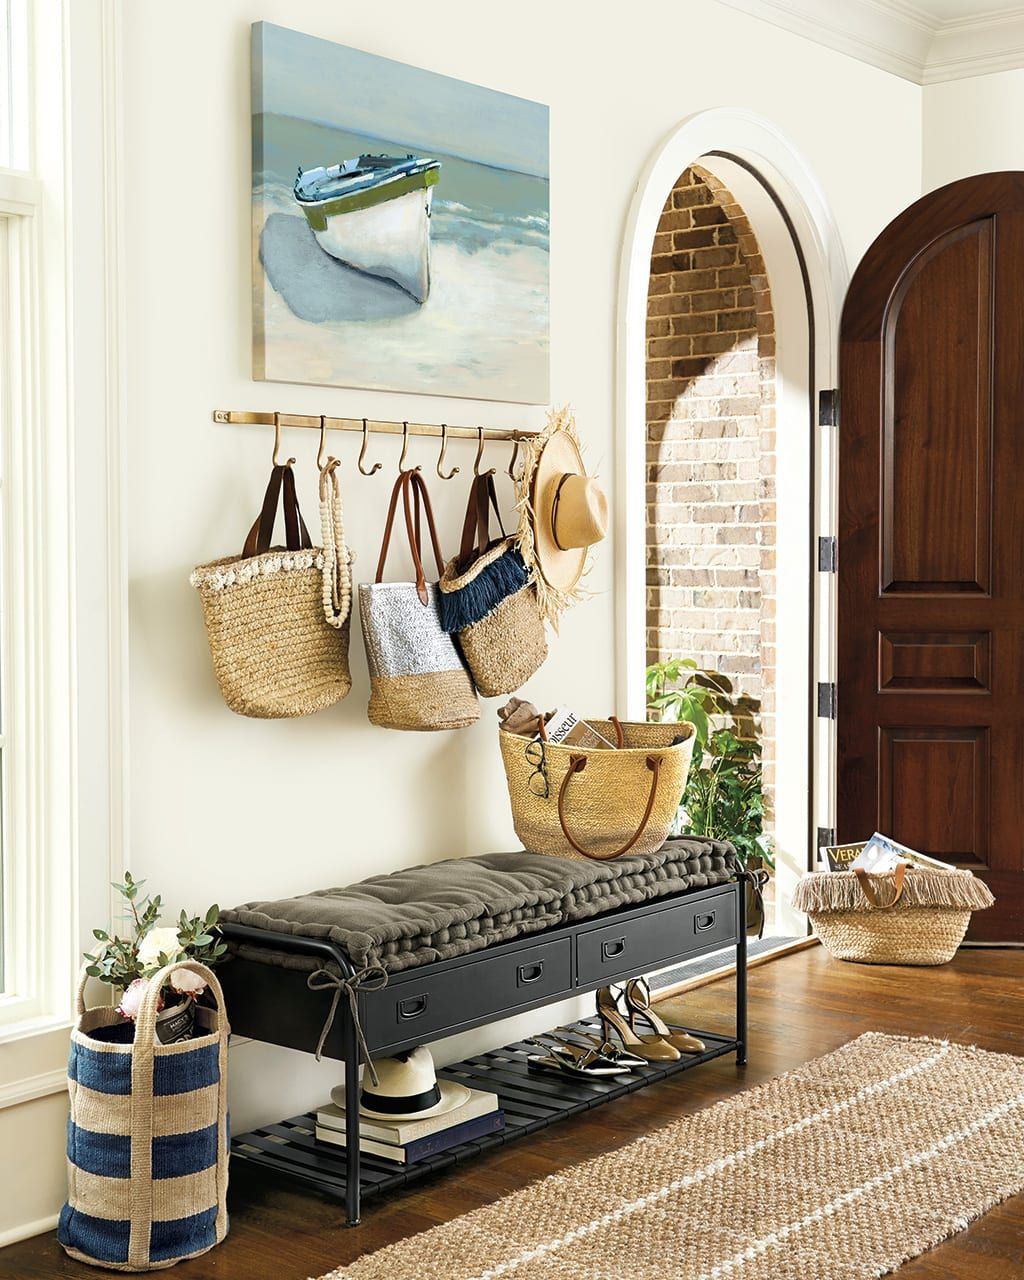 10 Ways To Fill A Blank Wall How To Decorate Decor Home Decor Foyer Decorating